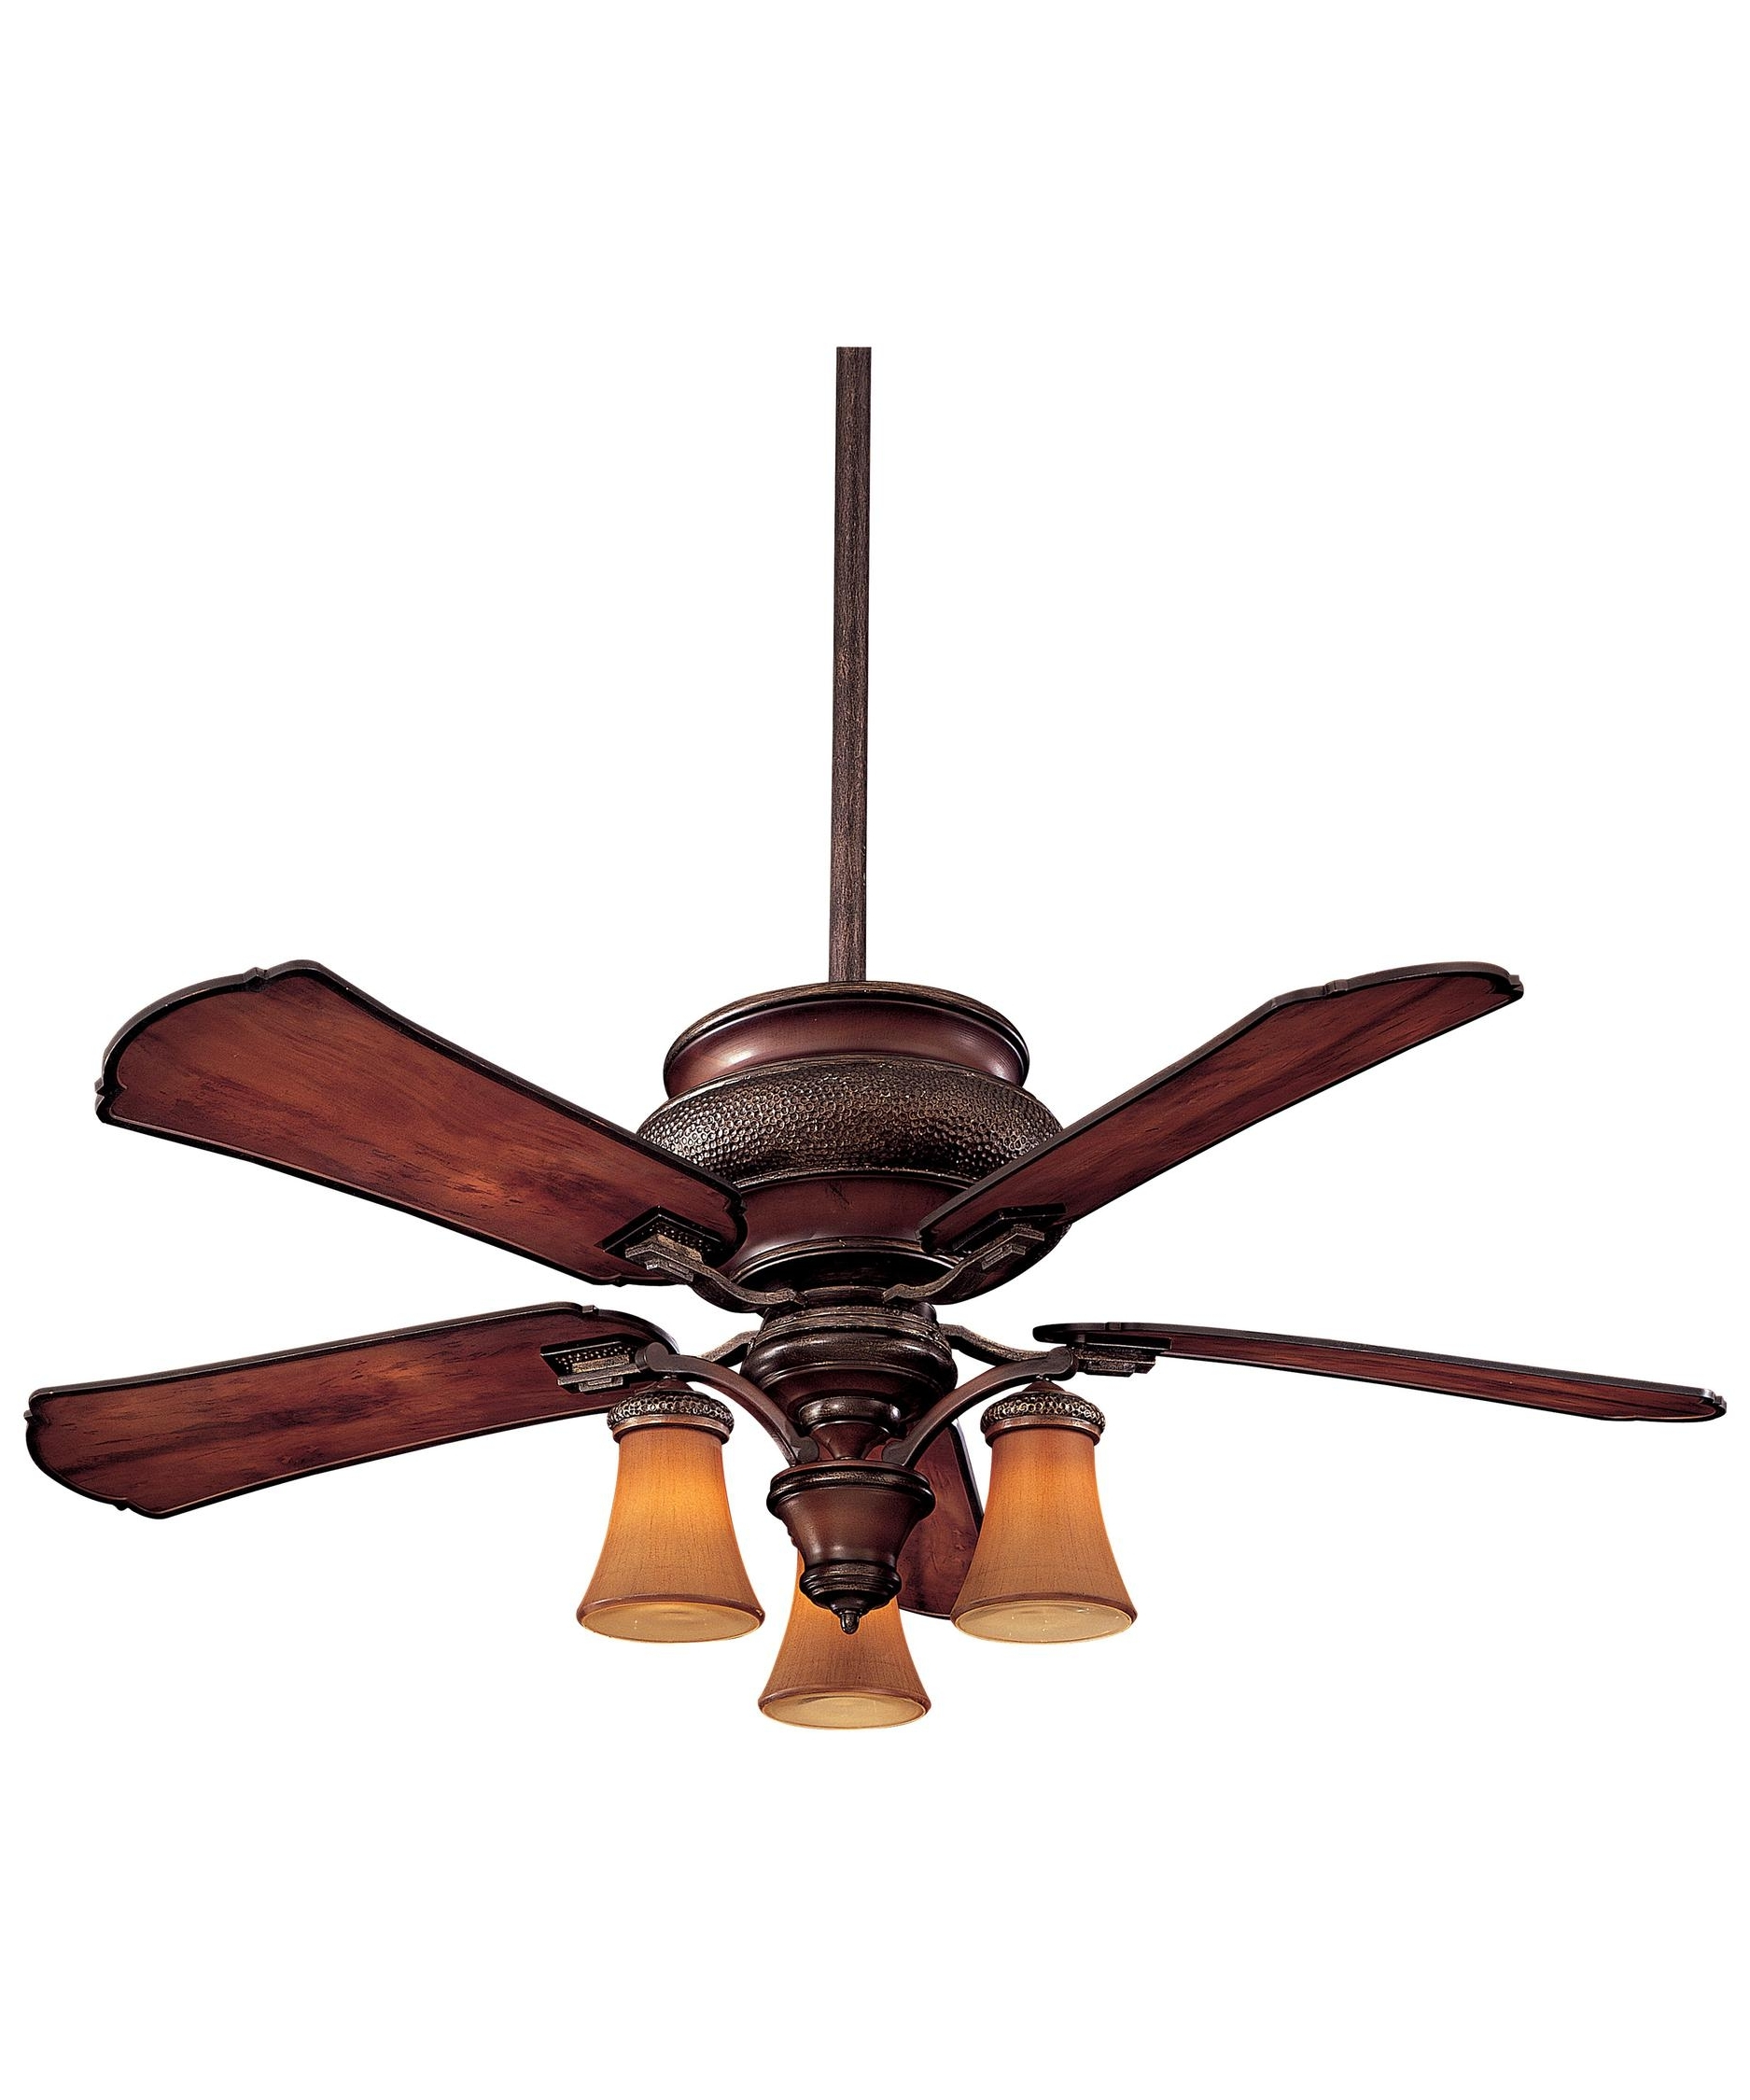 Craftsman Ceiling Fan Light Kit Outstanding Lowes Ceiling Fans With With Regard To 2019 Mission Style Outdoor Ceiling Fans With Lights (View 8 of 20)